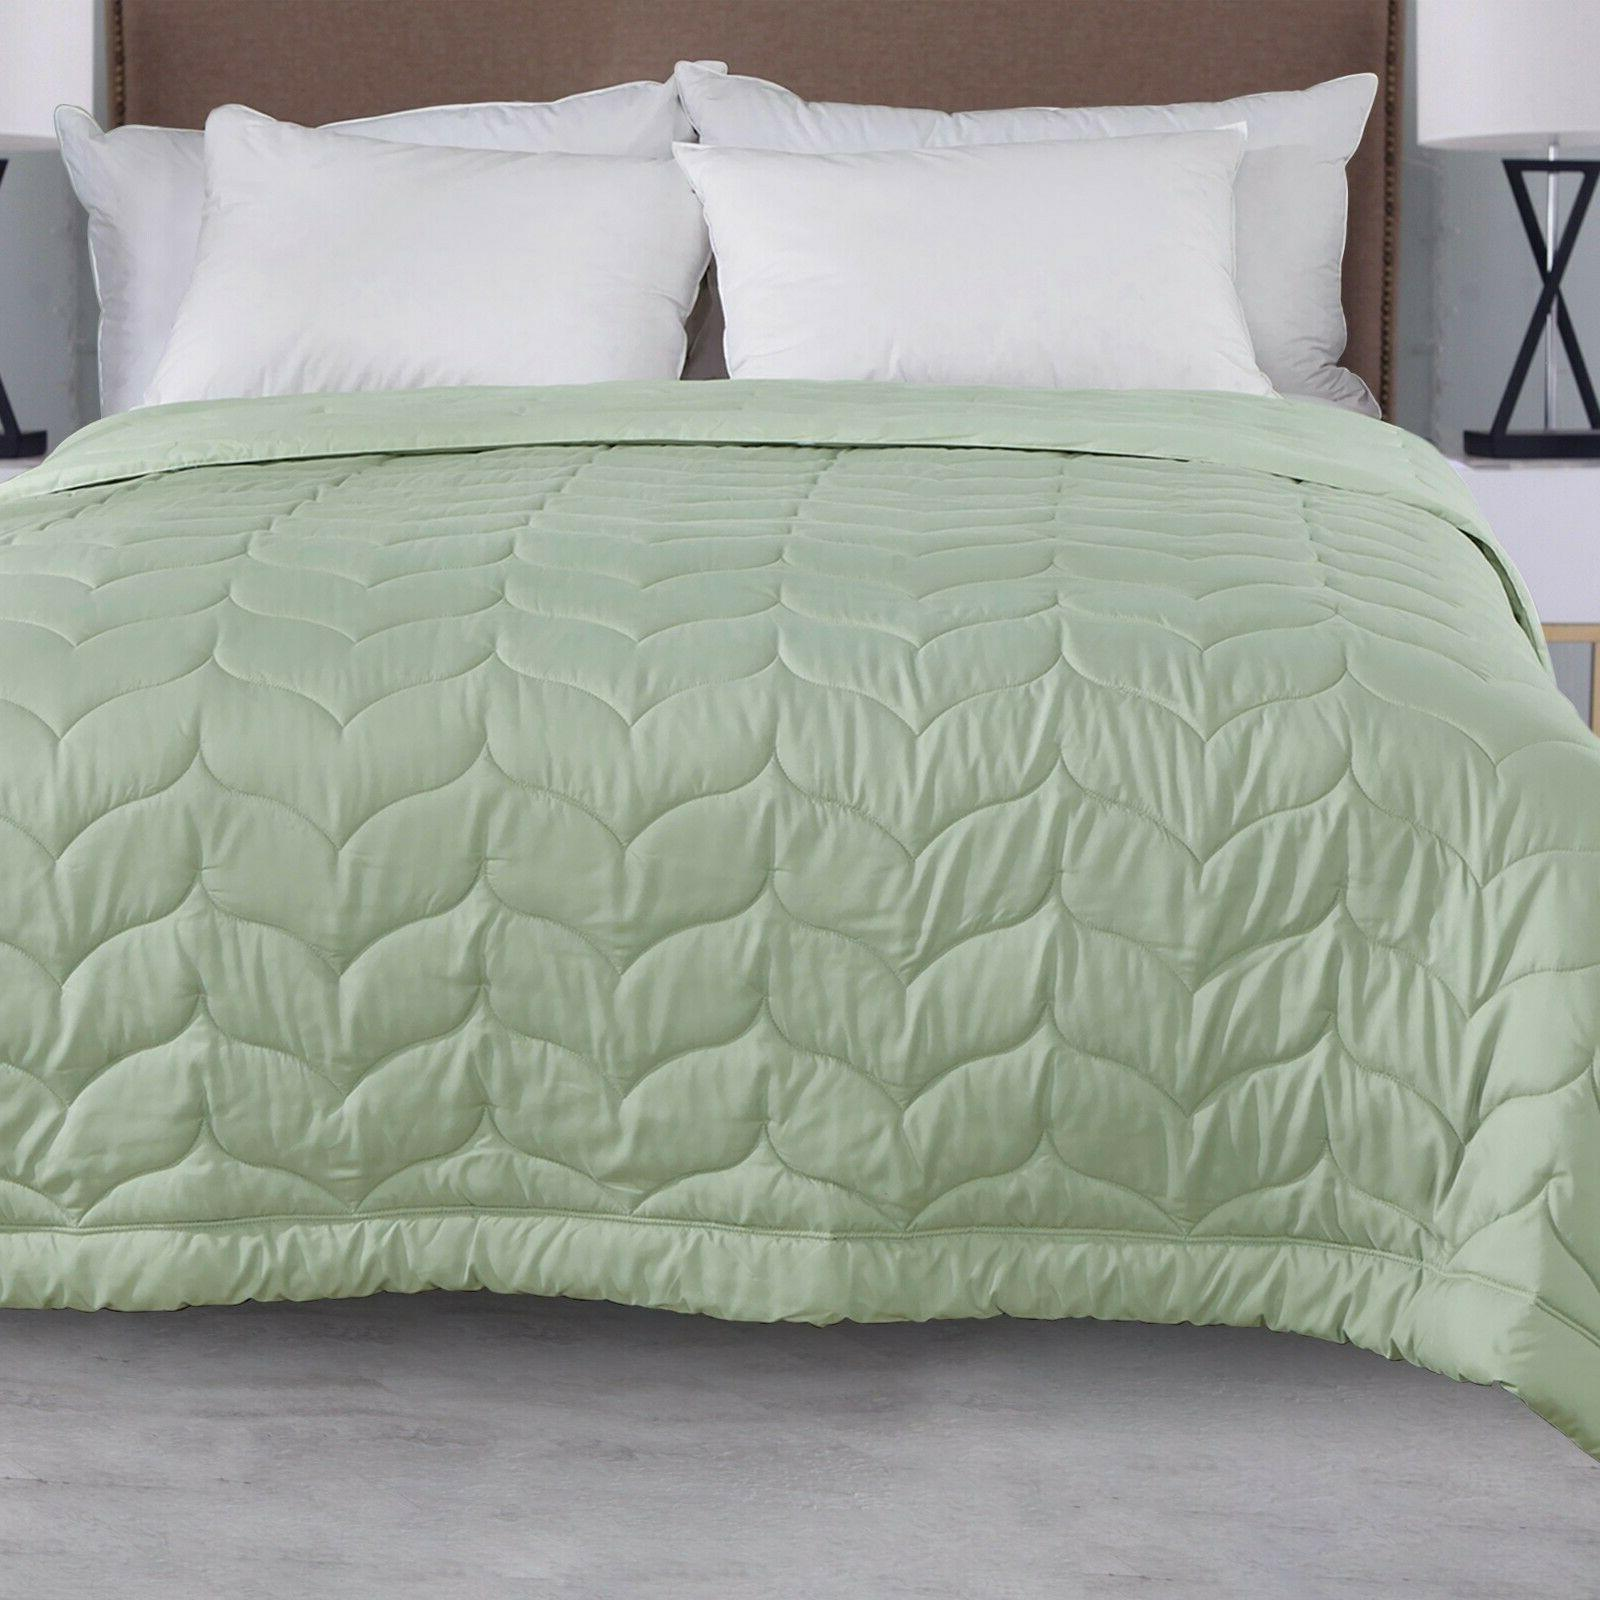 Quilted Down Blanket Comforter Lightweight Reversible King Size